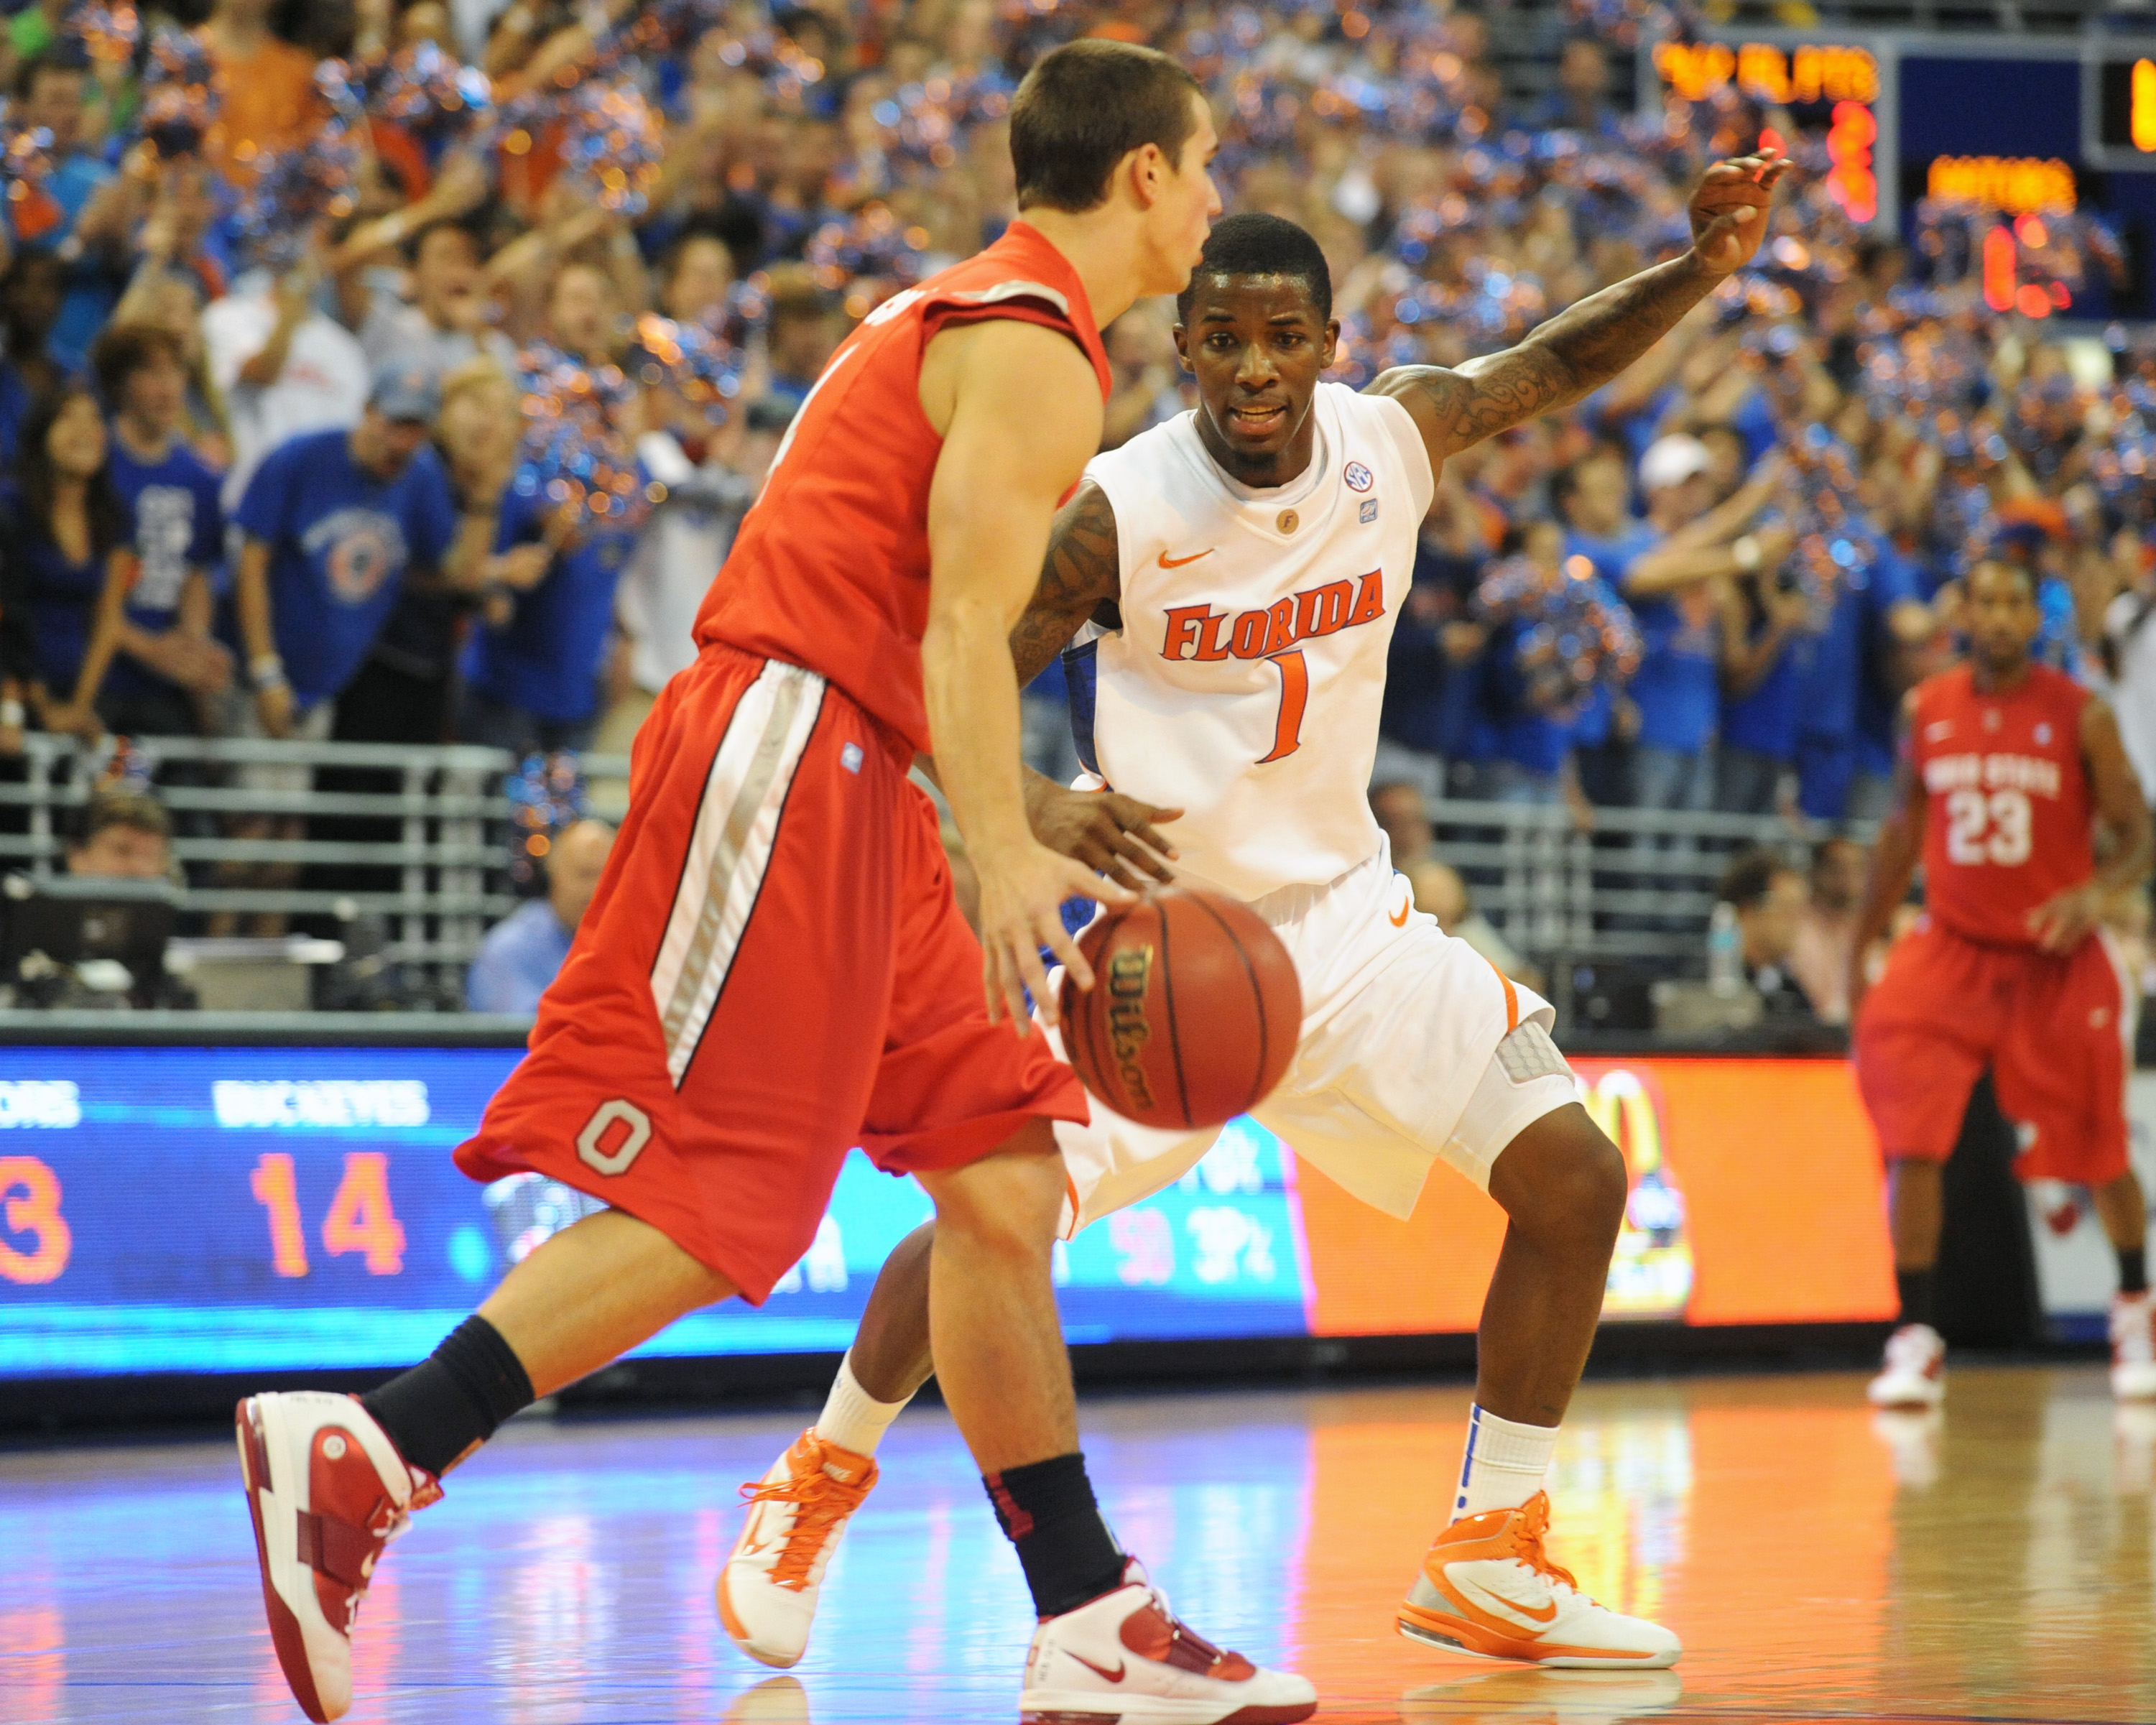 GAINESVILLE, FL - NOVEMBER 16: Guard Kenny Boynton #1 of the Florida Gators sets on defense against the Ohio State Buckeyes November 16, 2010 at the Stephen C. O'Connell Center in Gainesville, Florida.  (Photo by Al Messerschmidt/Getty Images)